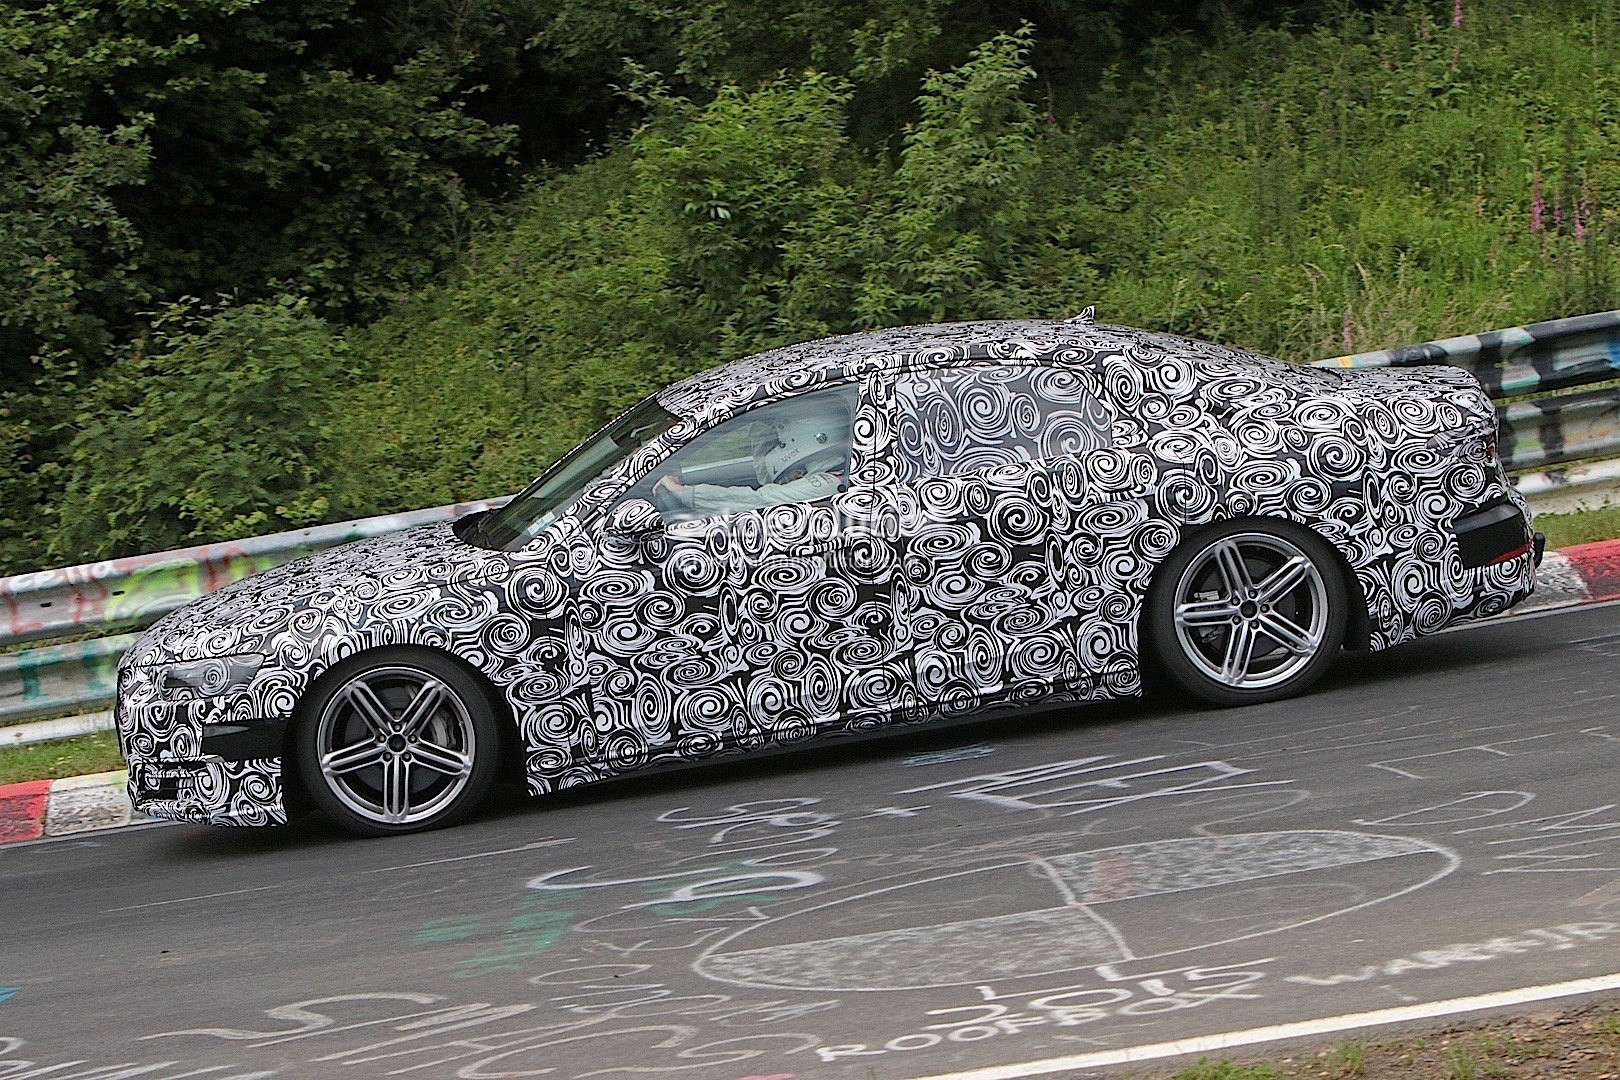 2018 audi plug in hybrid.  plug also expect a plugin hybrid version which makes things little  interesting the 2018 audi a8 has been confirmed to debut in 2017 at some point and audi plug